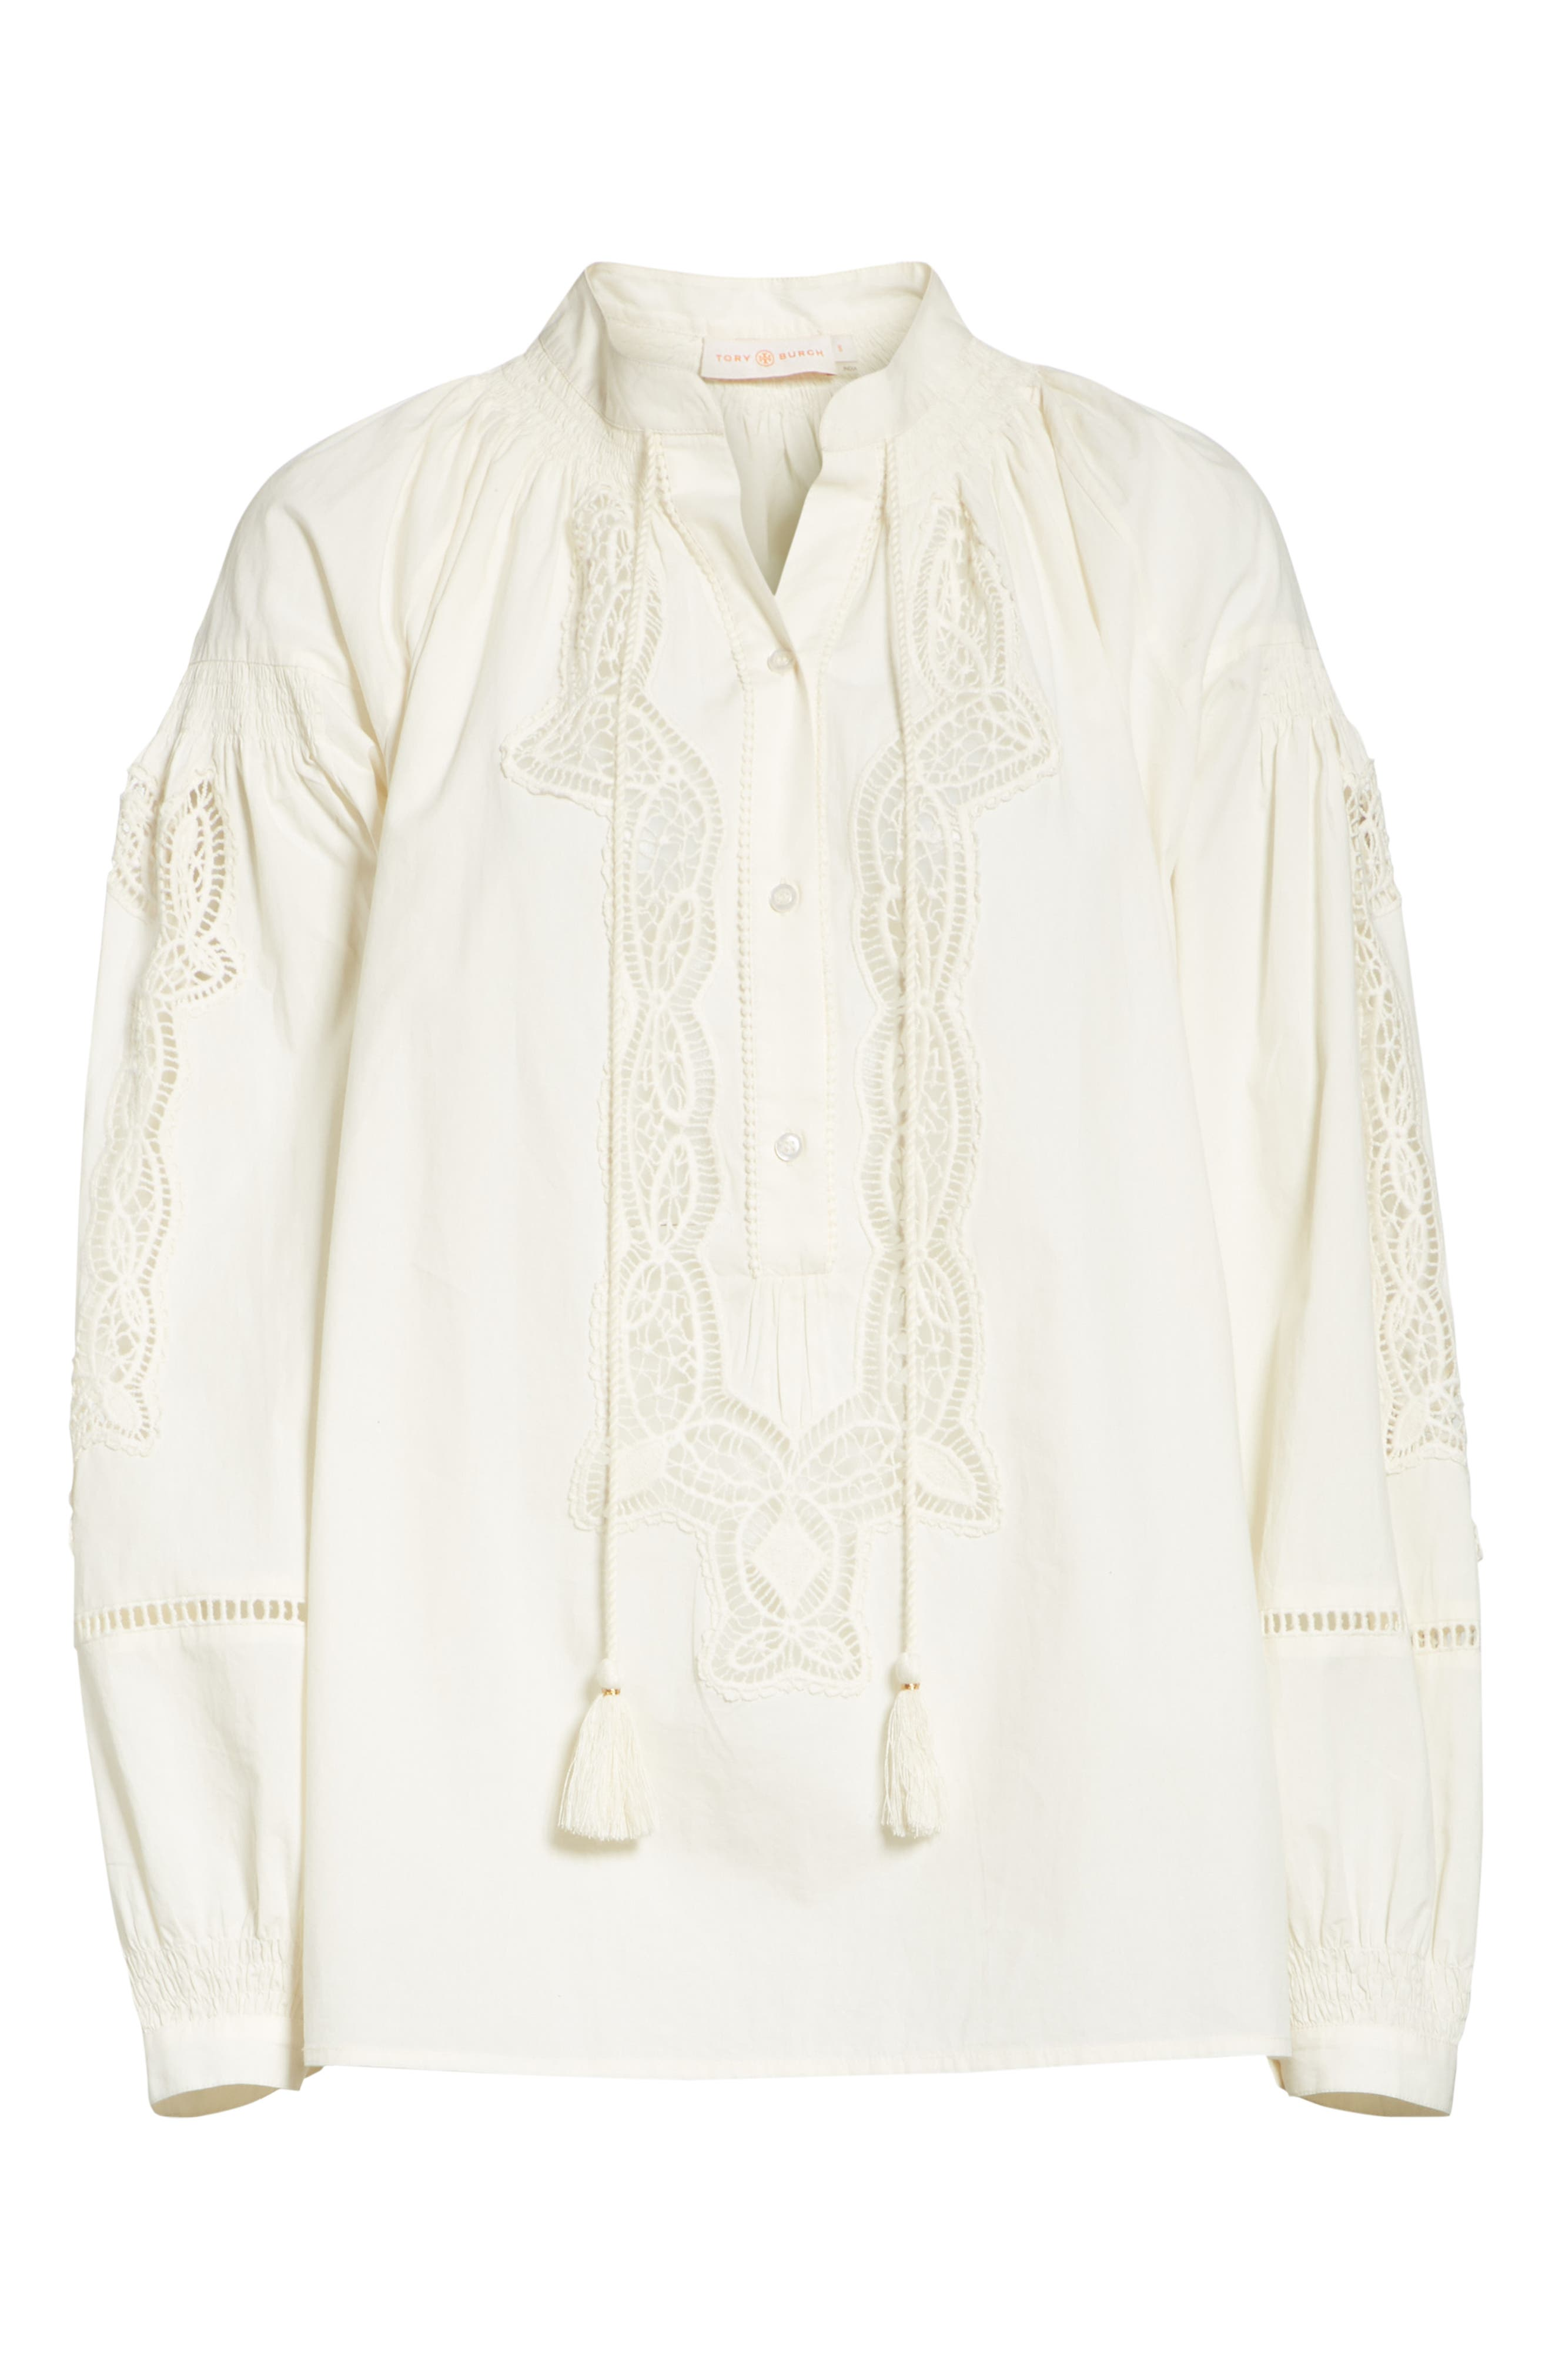 Kimberly Lace Trim Blouse,                             Alternate thumbnail 6, color,                             New Ivory